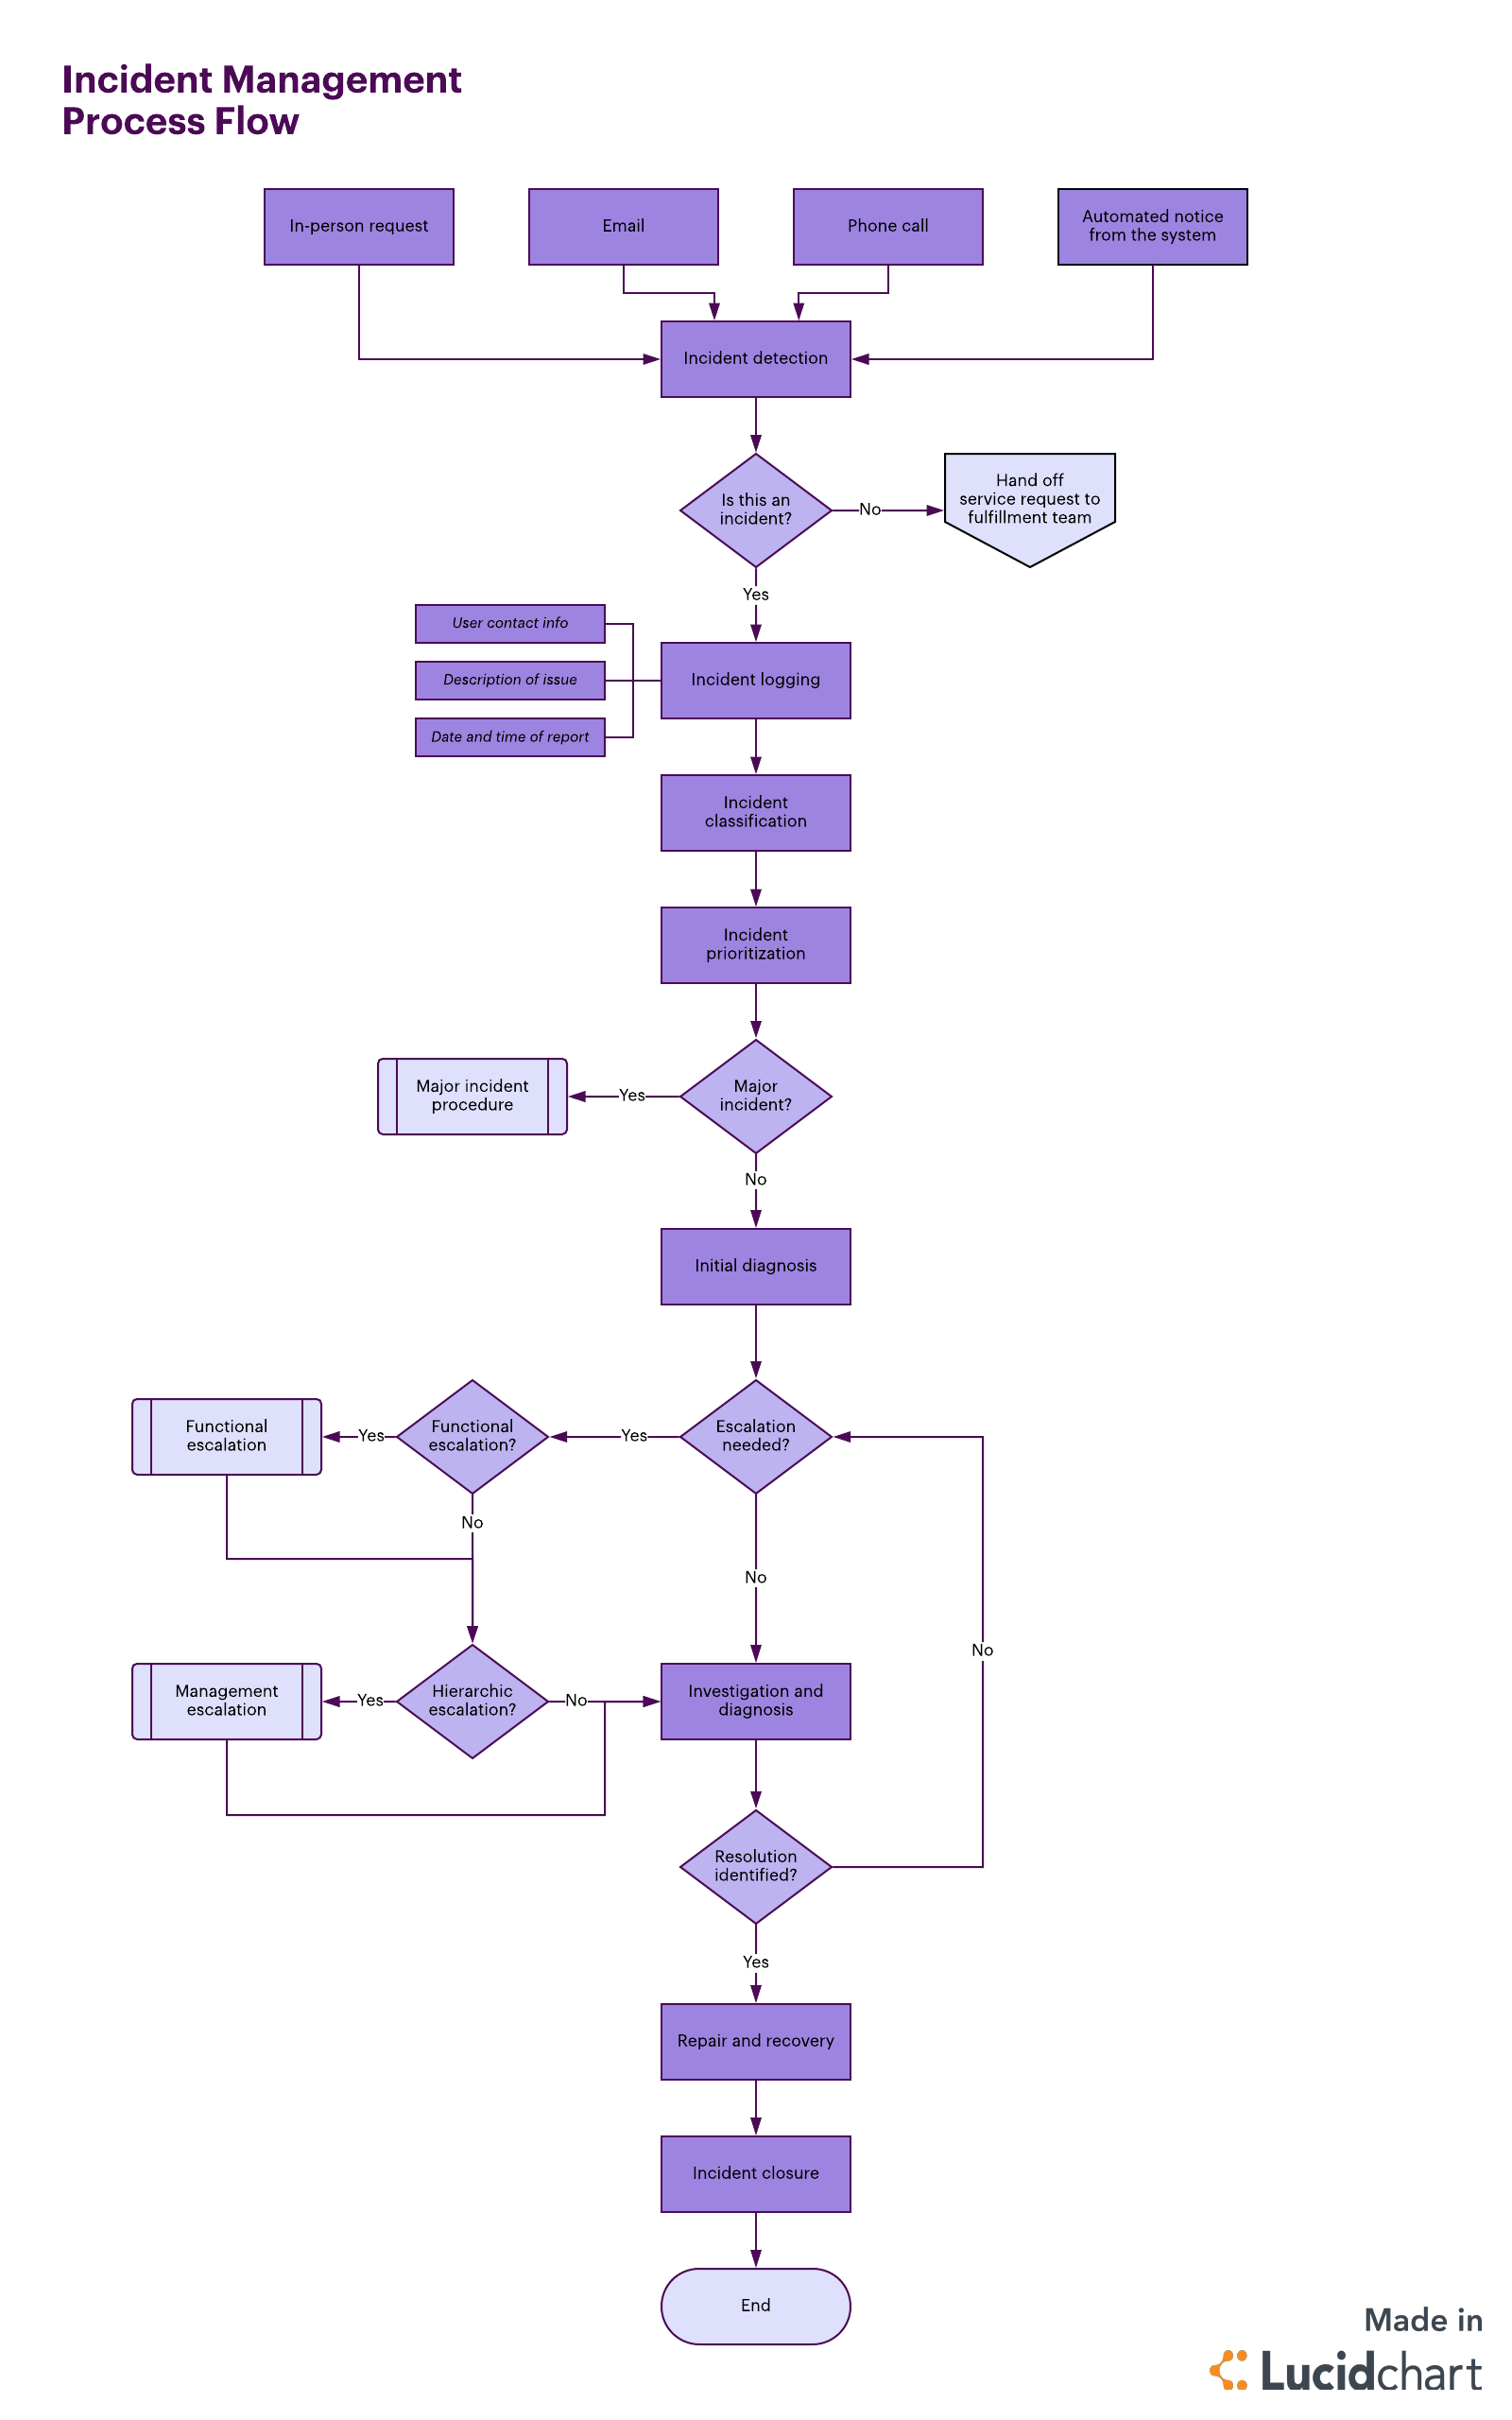 How To Implement An Incident Management Process